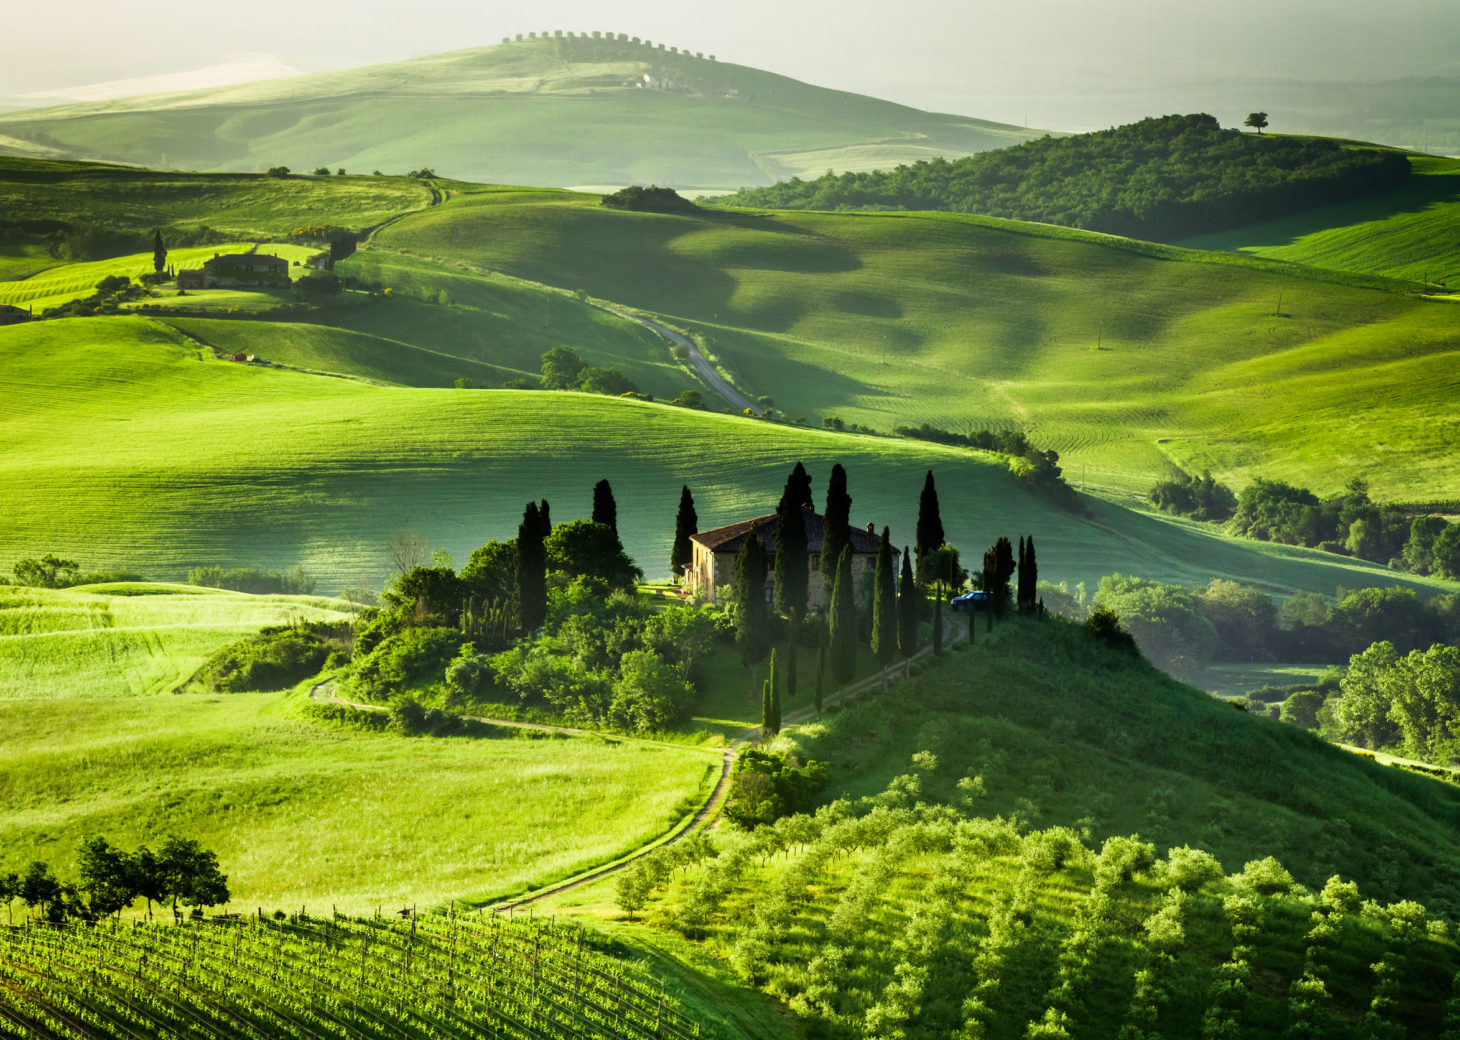 The beauty of the Tuscany inland